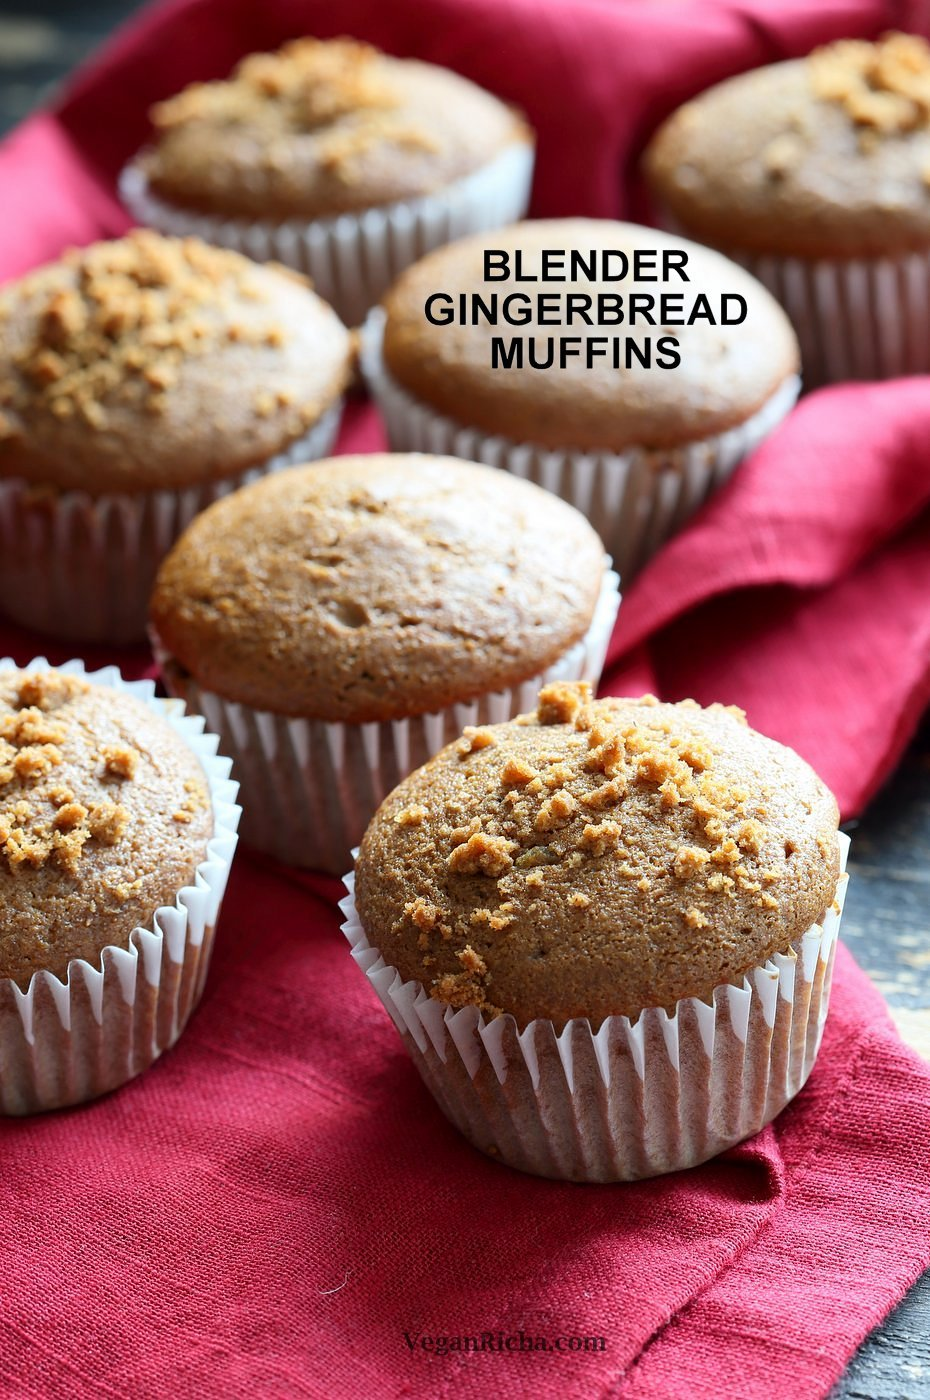 Soft Moist Triple Ginger Vegan Gingerbread Muffins with candied, fresh and ground ginger and gingerbread spices. This muffin batter can be made in a blender! #Vegan #Nutfree #Soyfree #Recipe #veganricha | VeganRicha.com